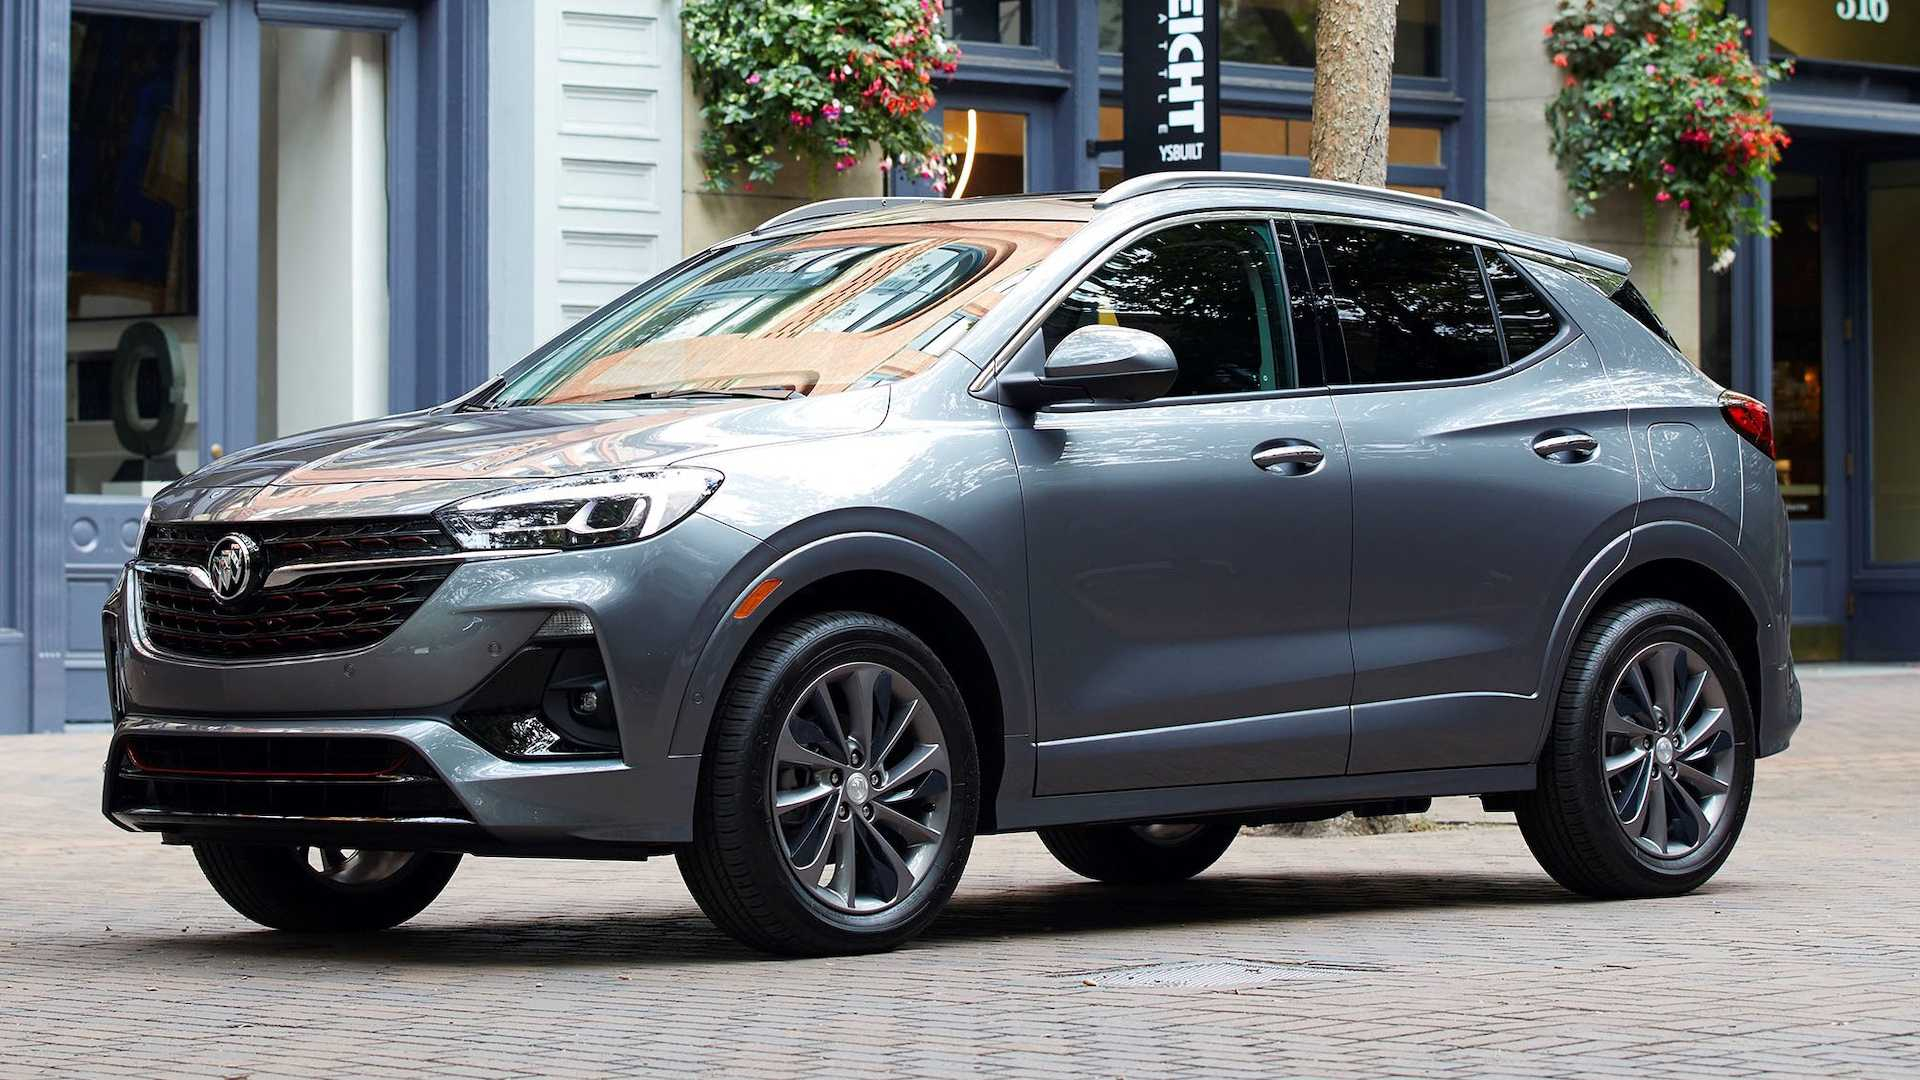 2021 Buick Encore Gx Details Emerge: Styling Tweaks, More Tech New 2022 Buick Encore Gx Preferred, Problems, Photos